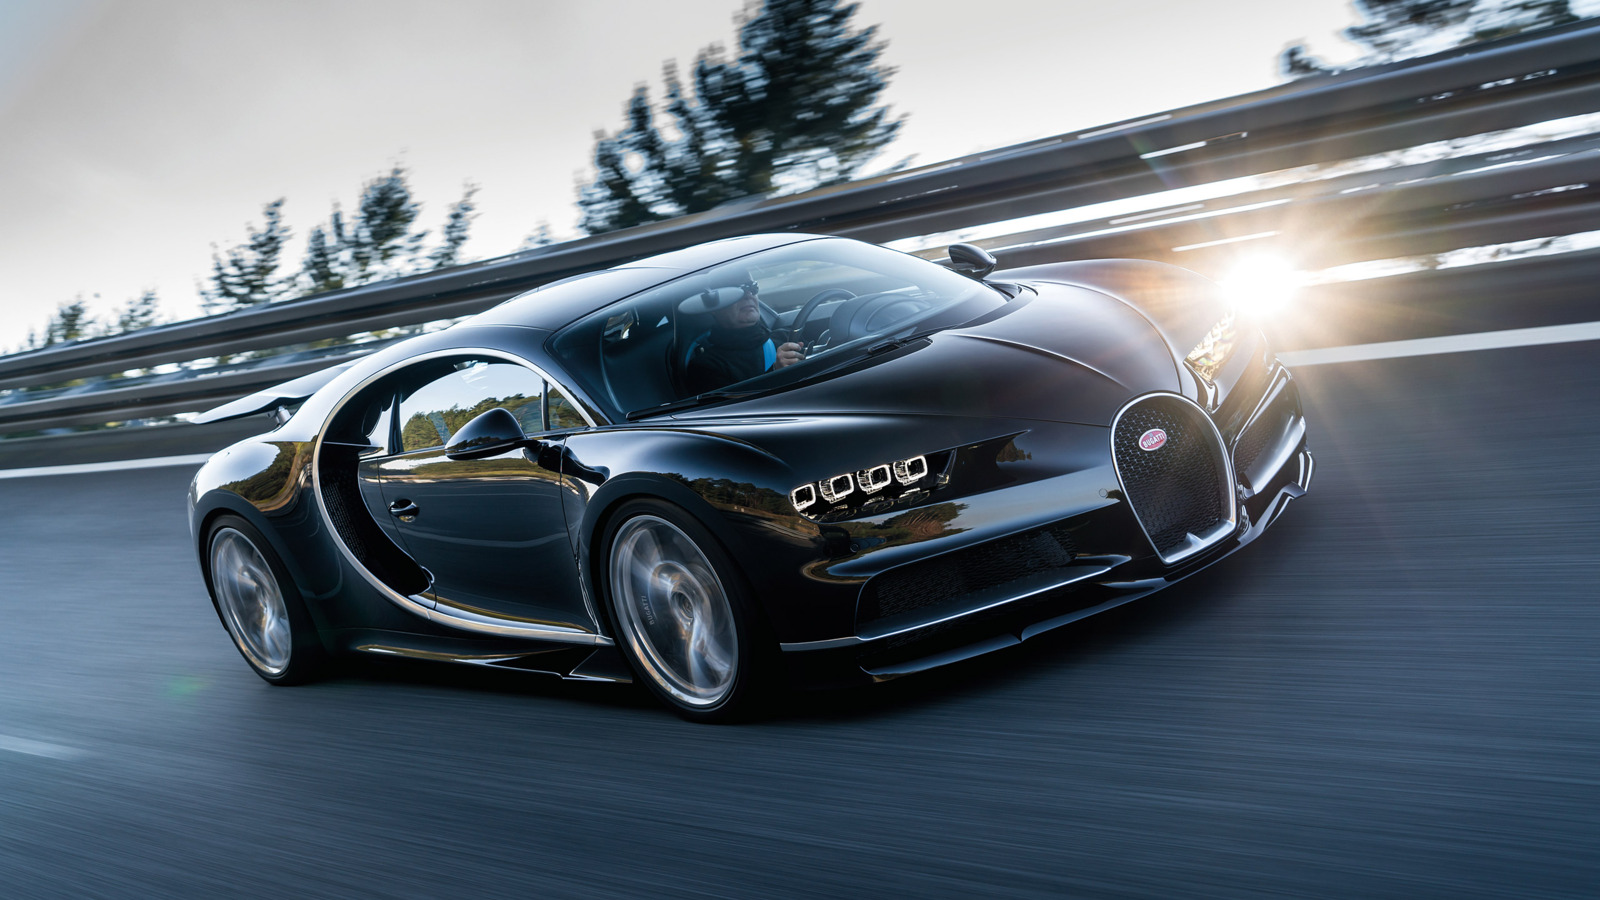 1600x900 Bugatti Chiron Super Car 1600x900 Resolution Hd 4k